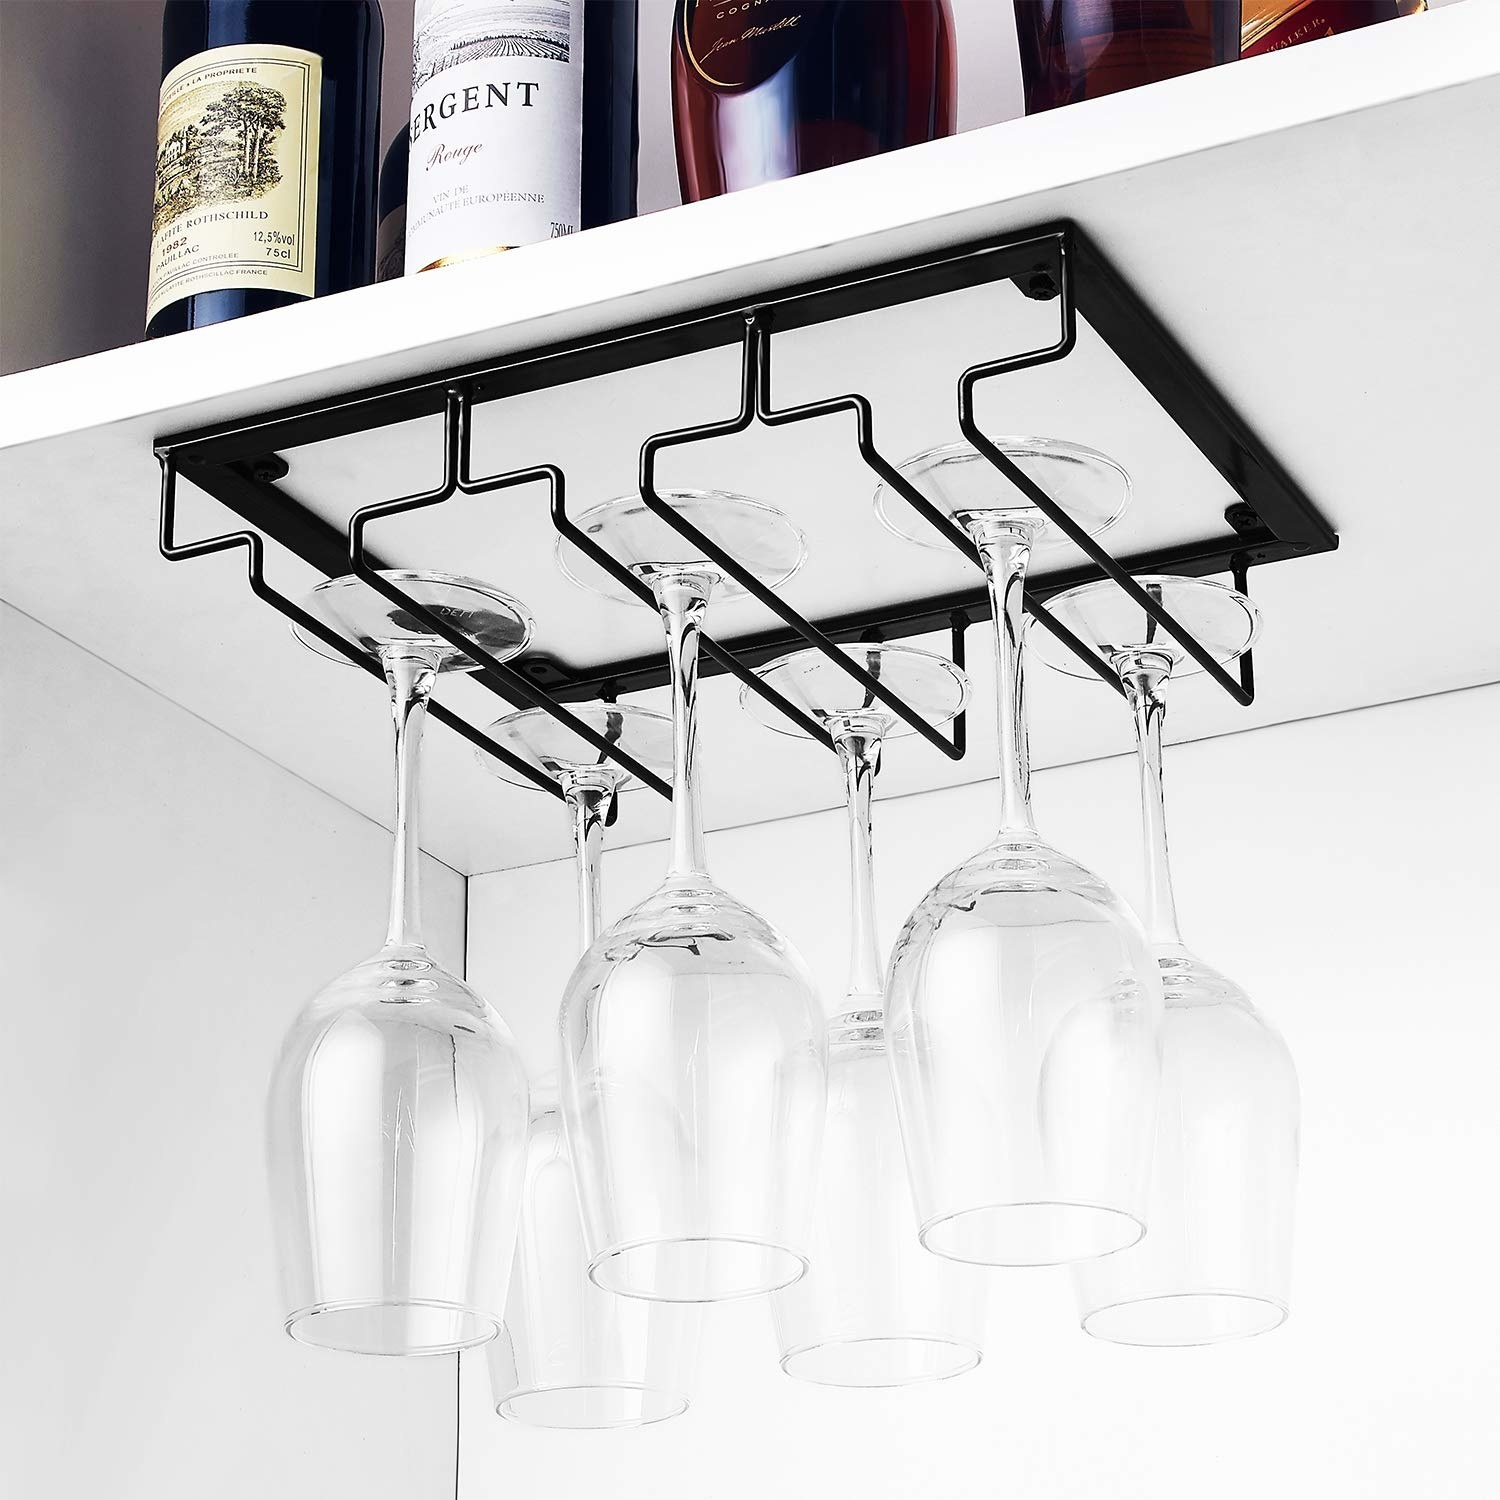 Six glasses hanging from the black rack under a cabinet